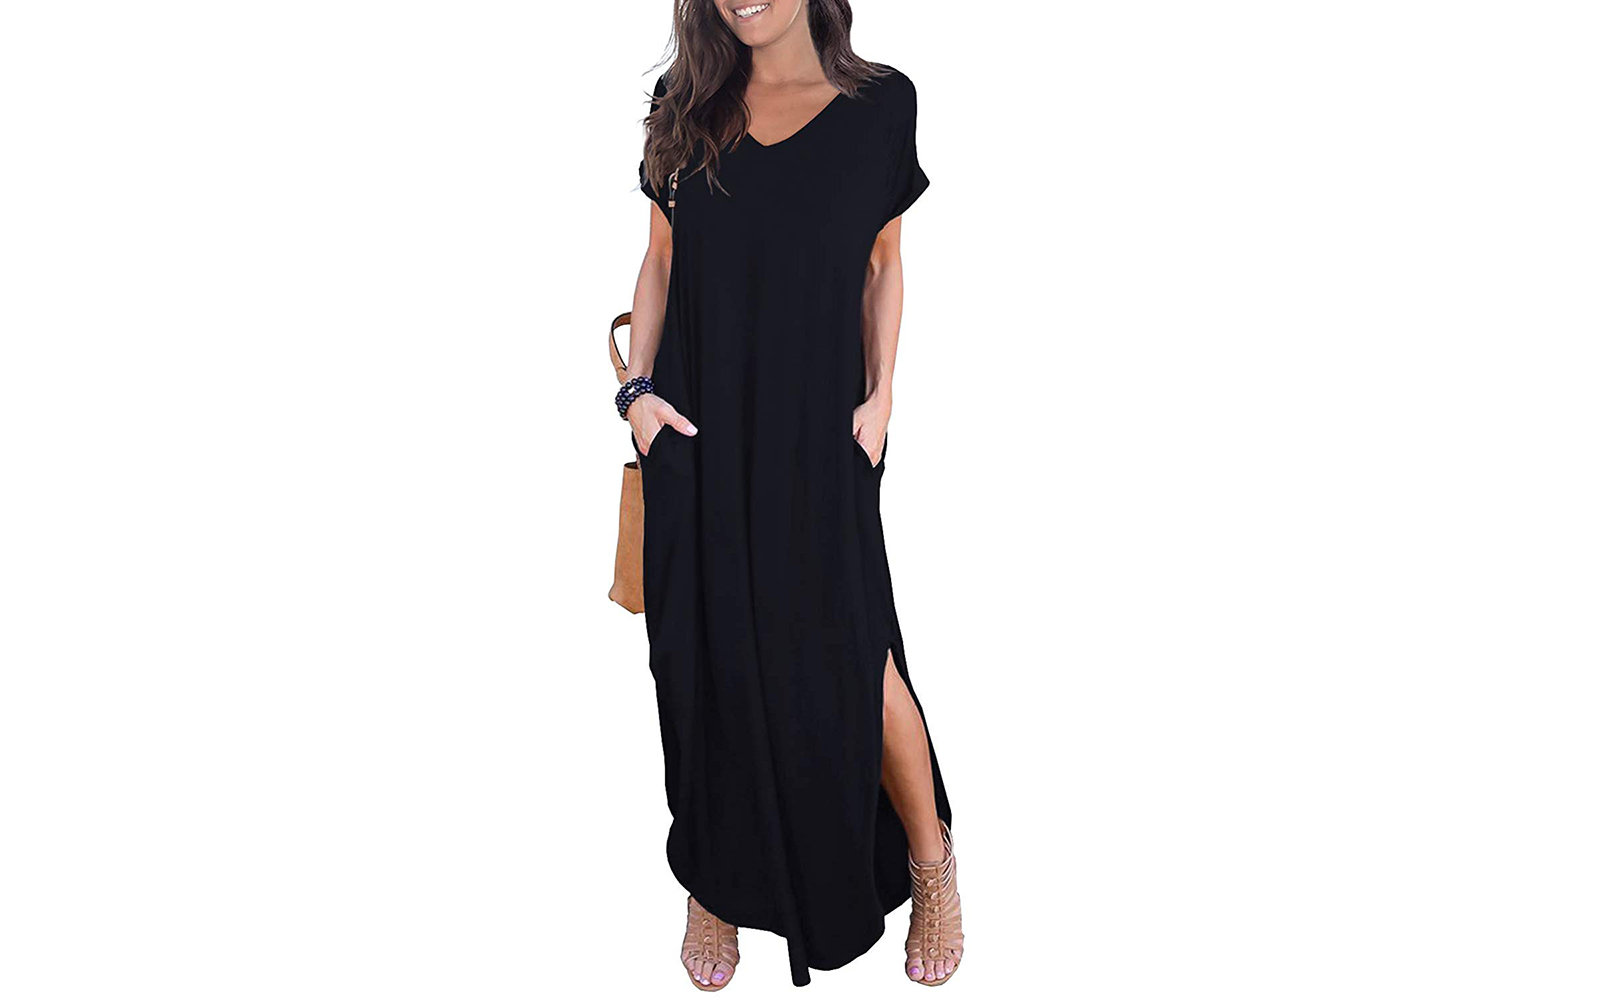 The Best Comfortable Travel Dress on Amazon Is Just $24